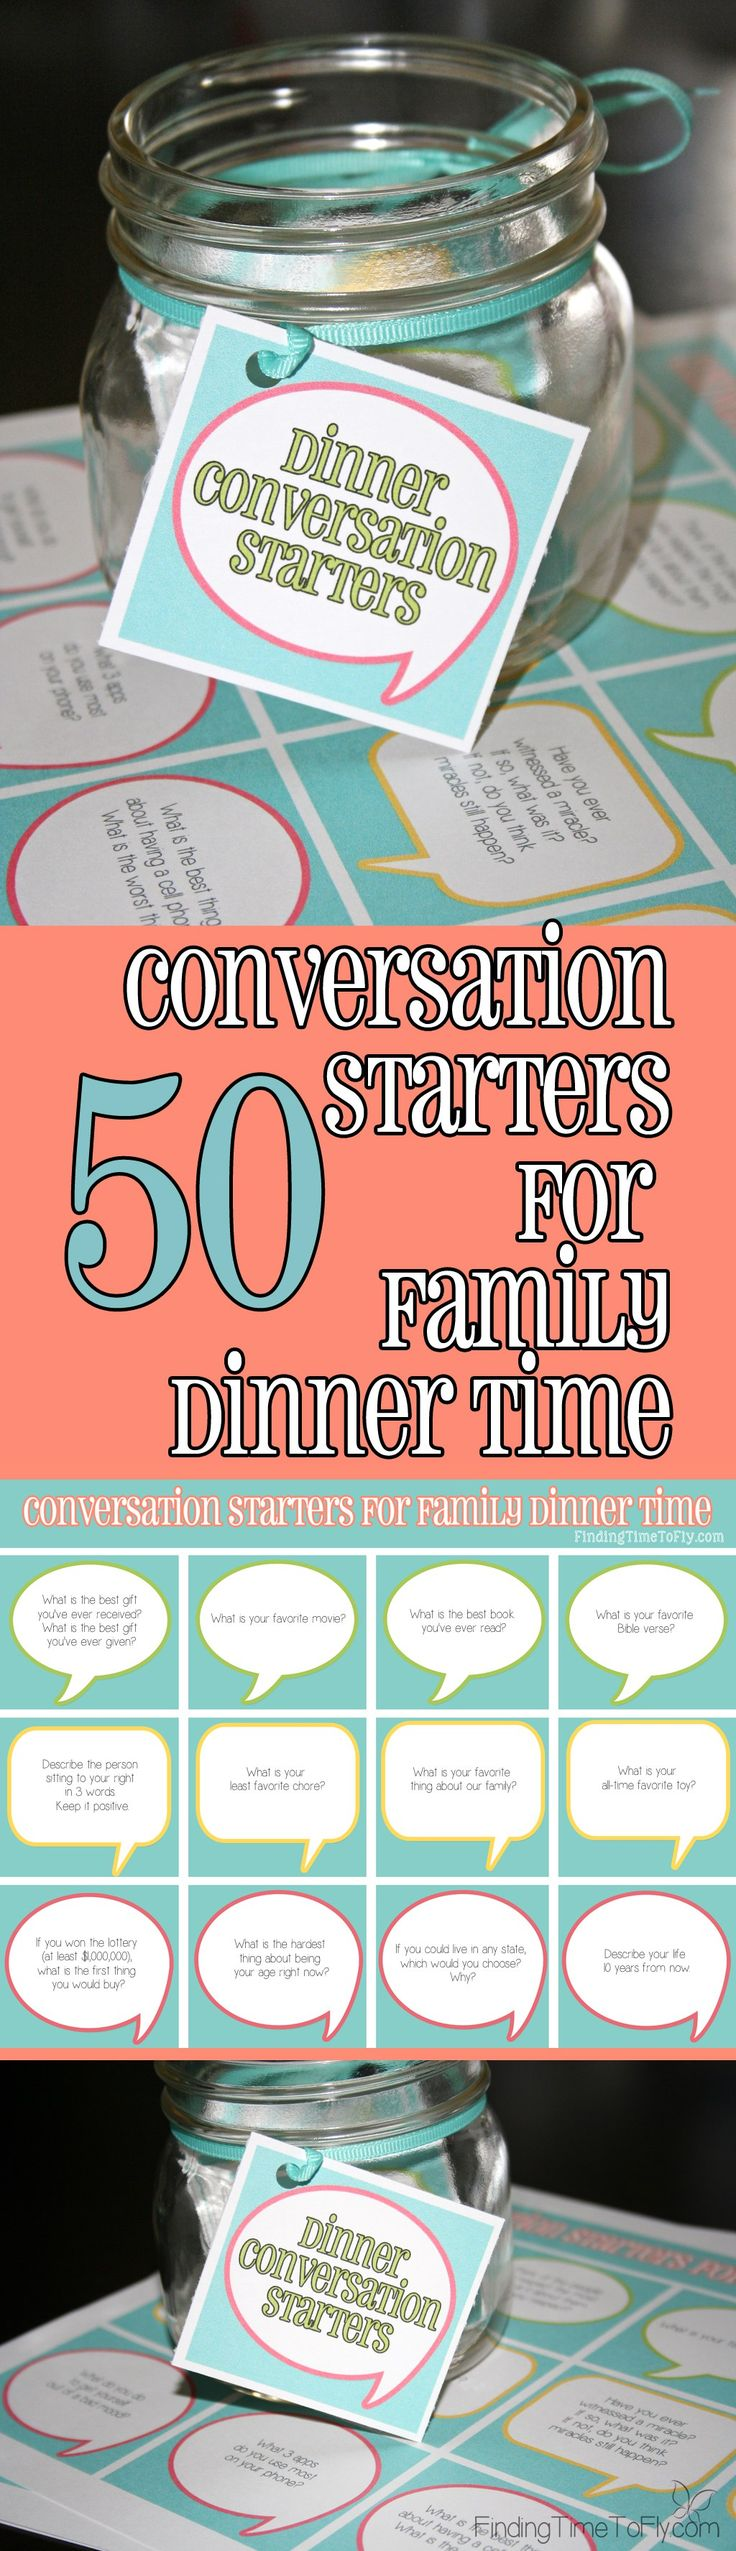 Great conversation starters for online dating